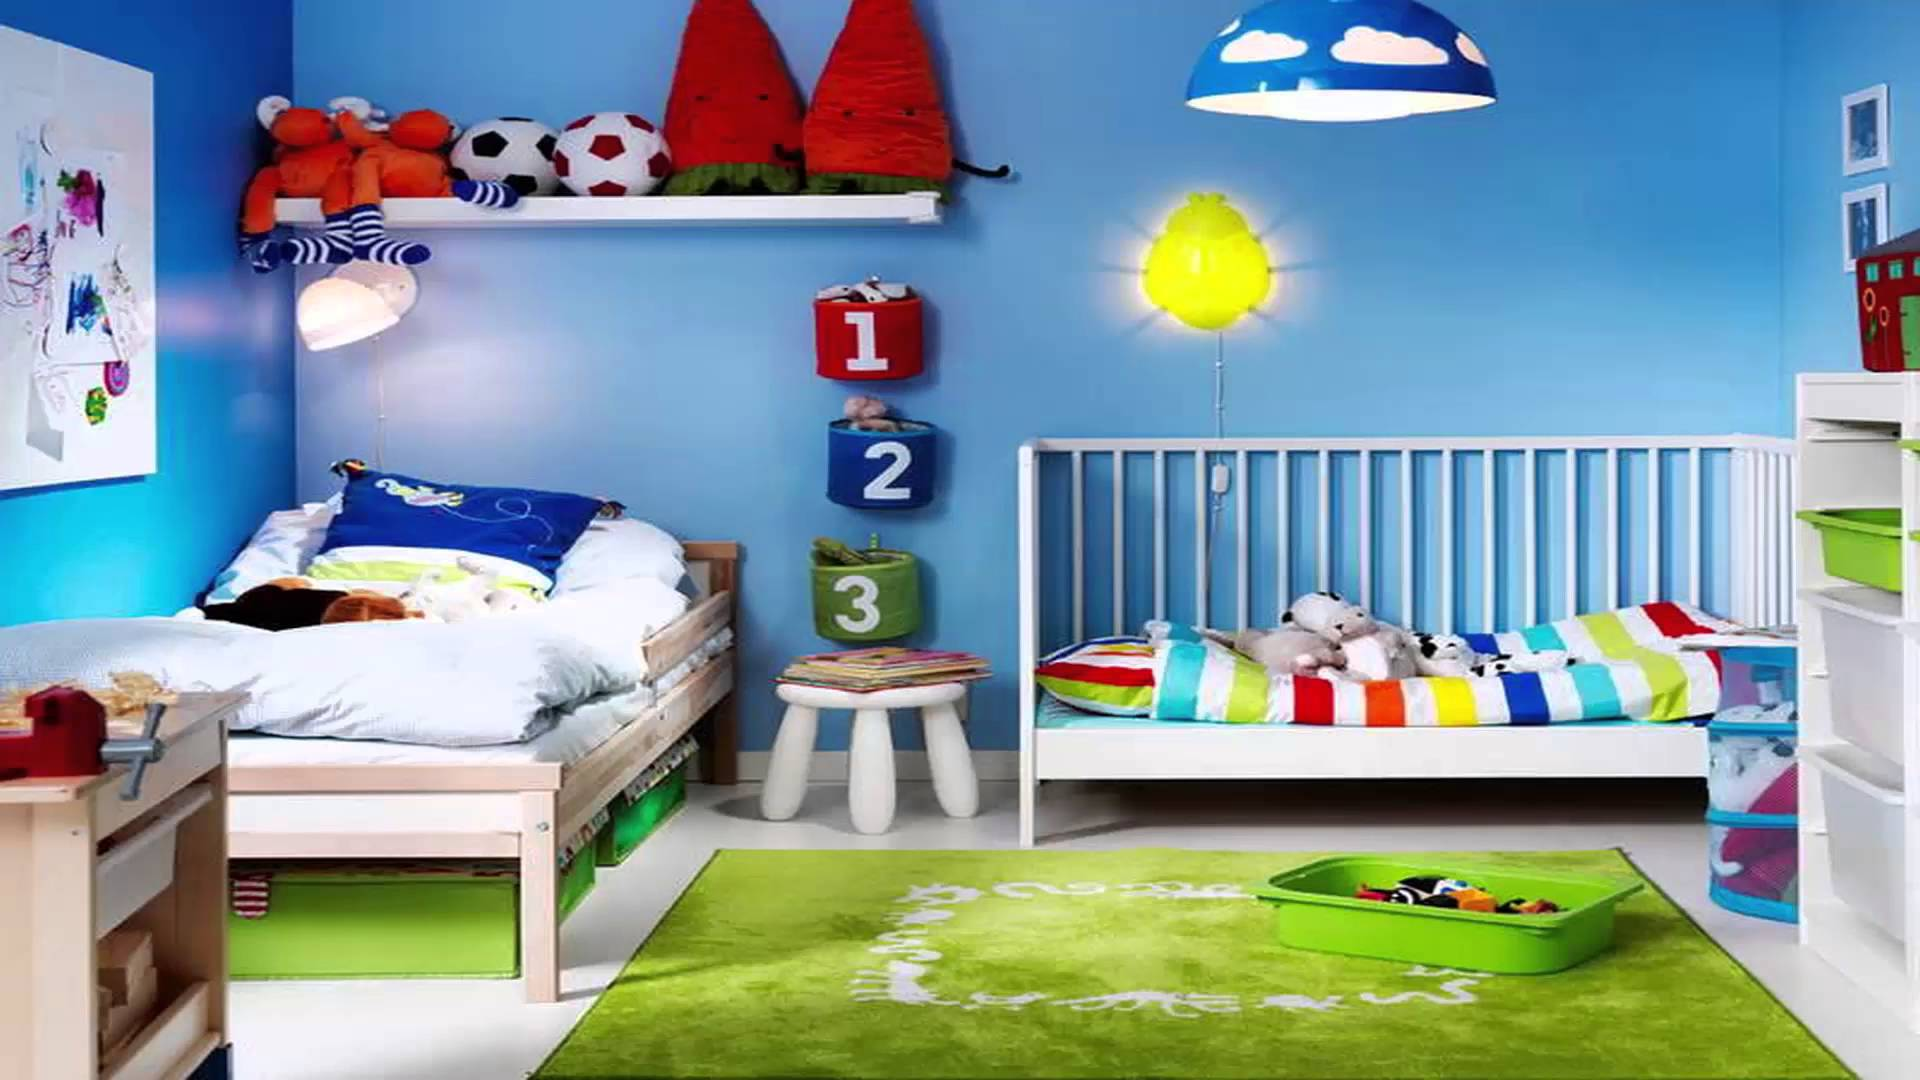 Kidsroomstogo   Mattress Charlotte Nc   Rooms to Go in Plano Tx